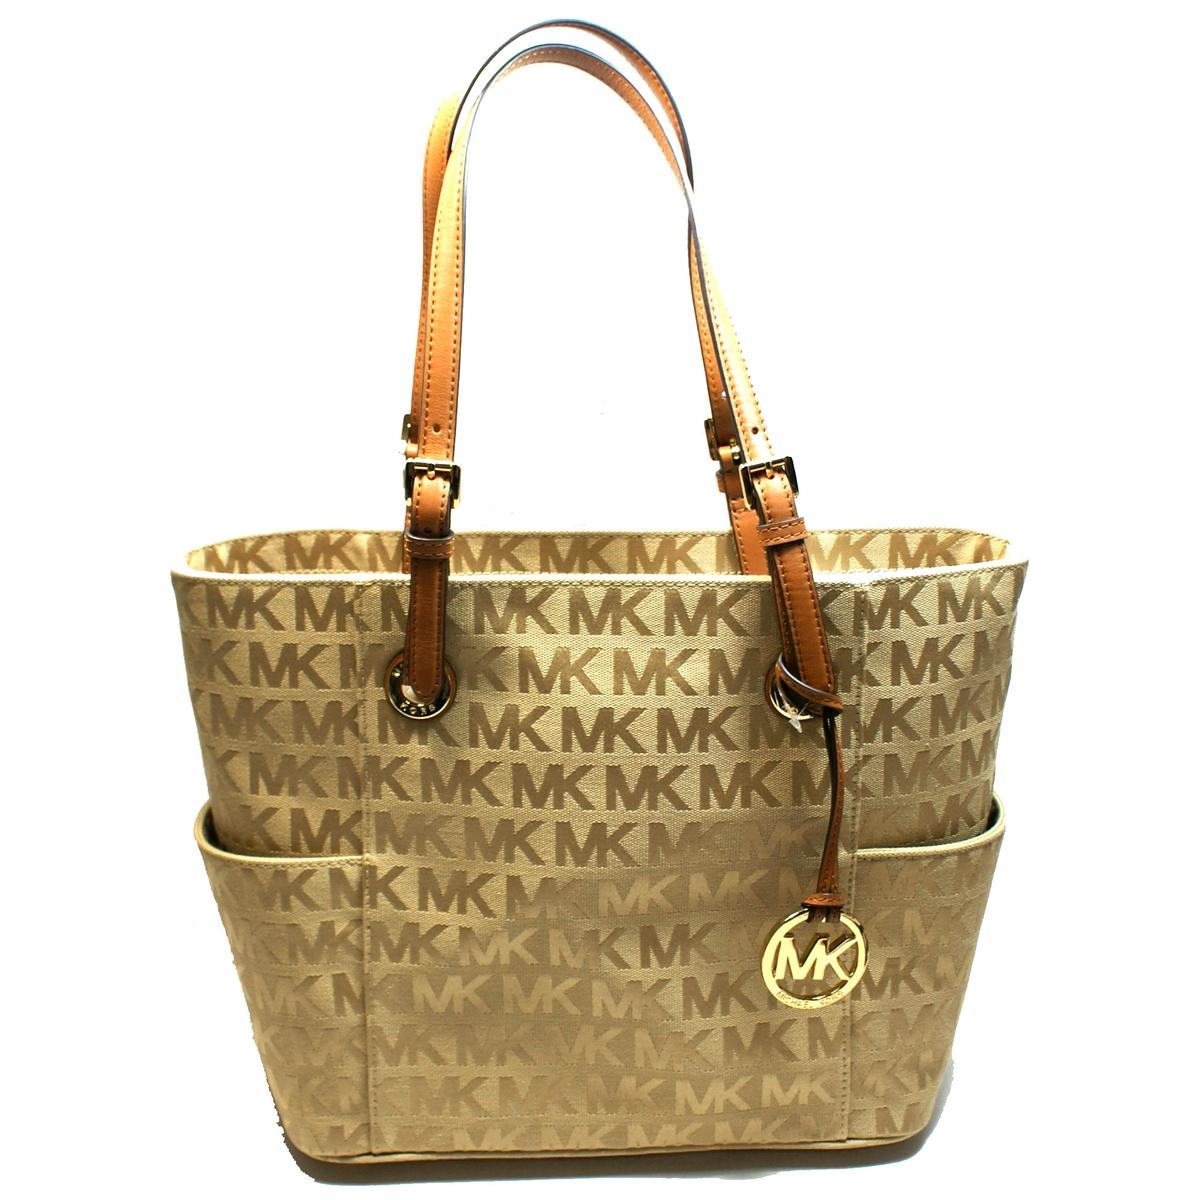 Michael kors bags in dubai - Found In Handbags